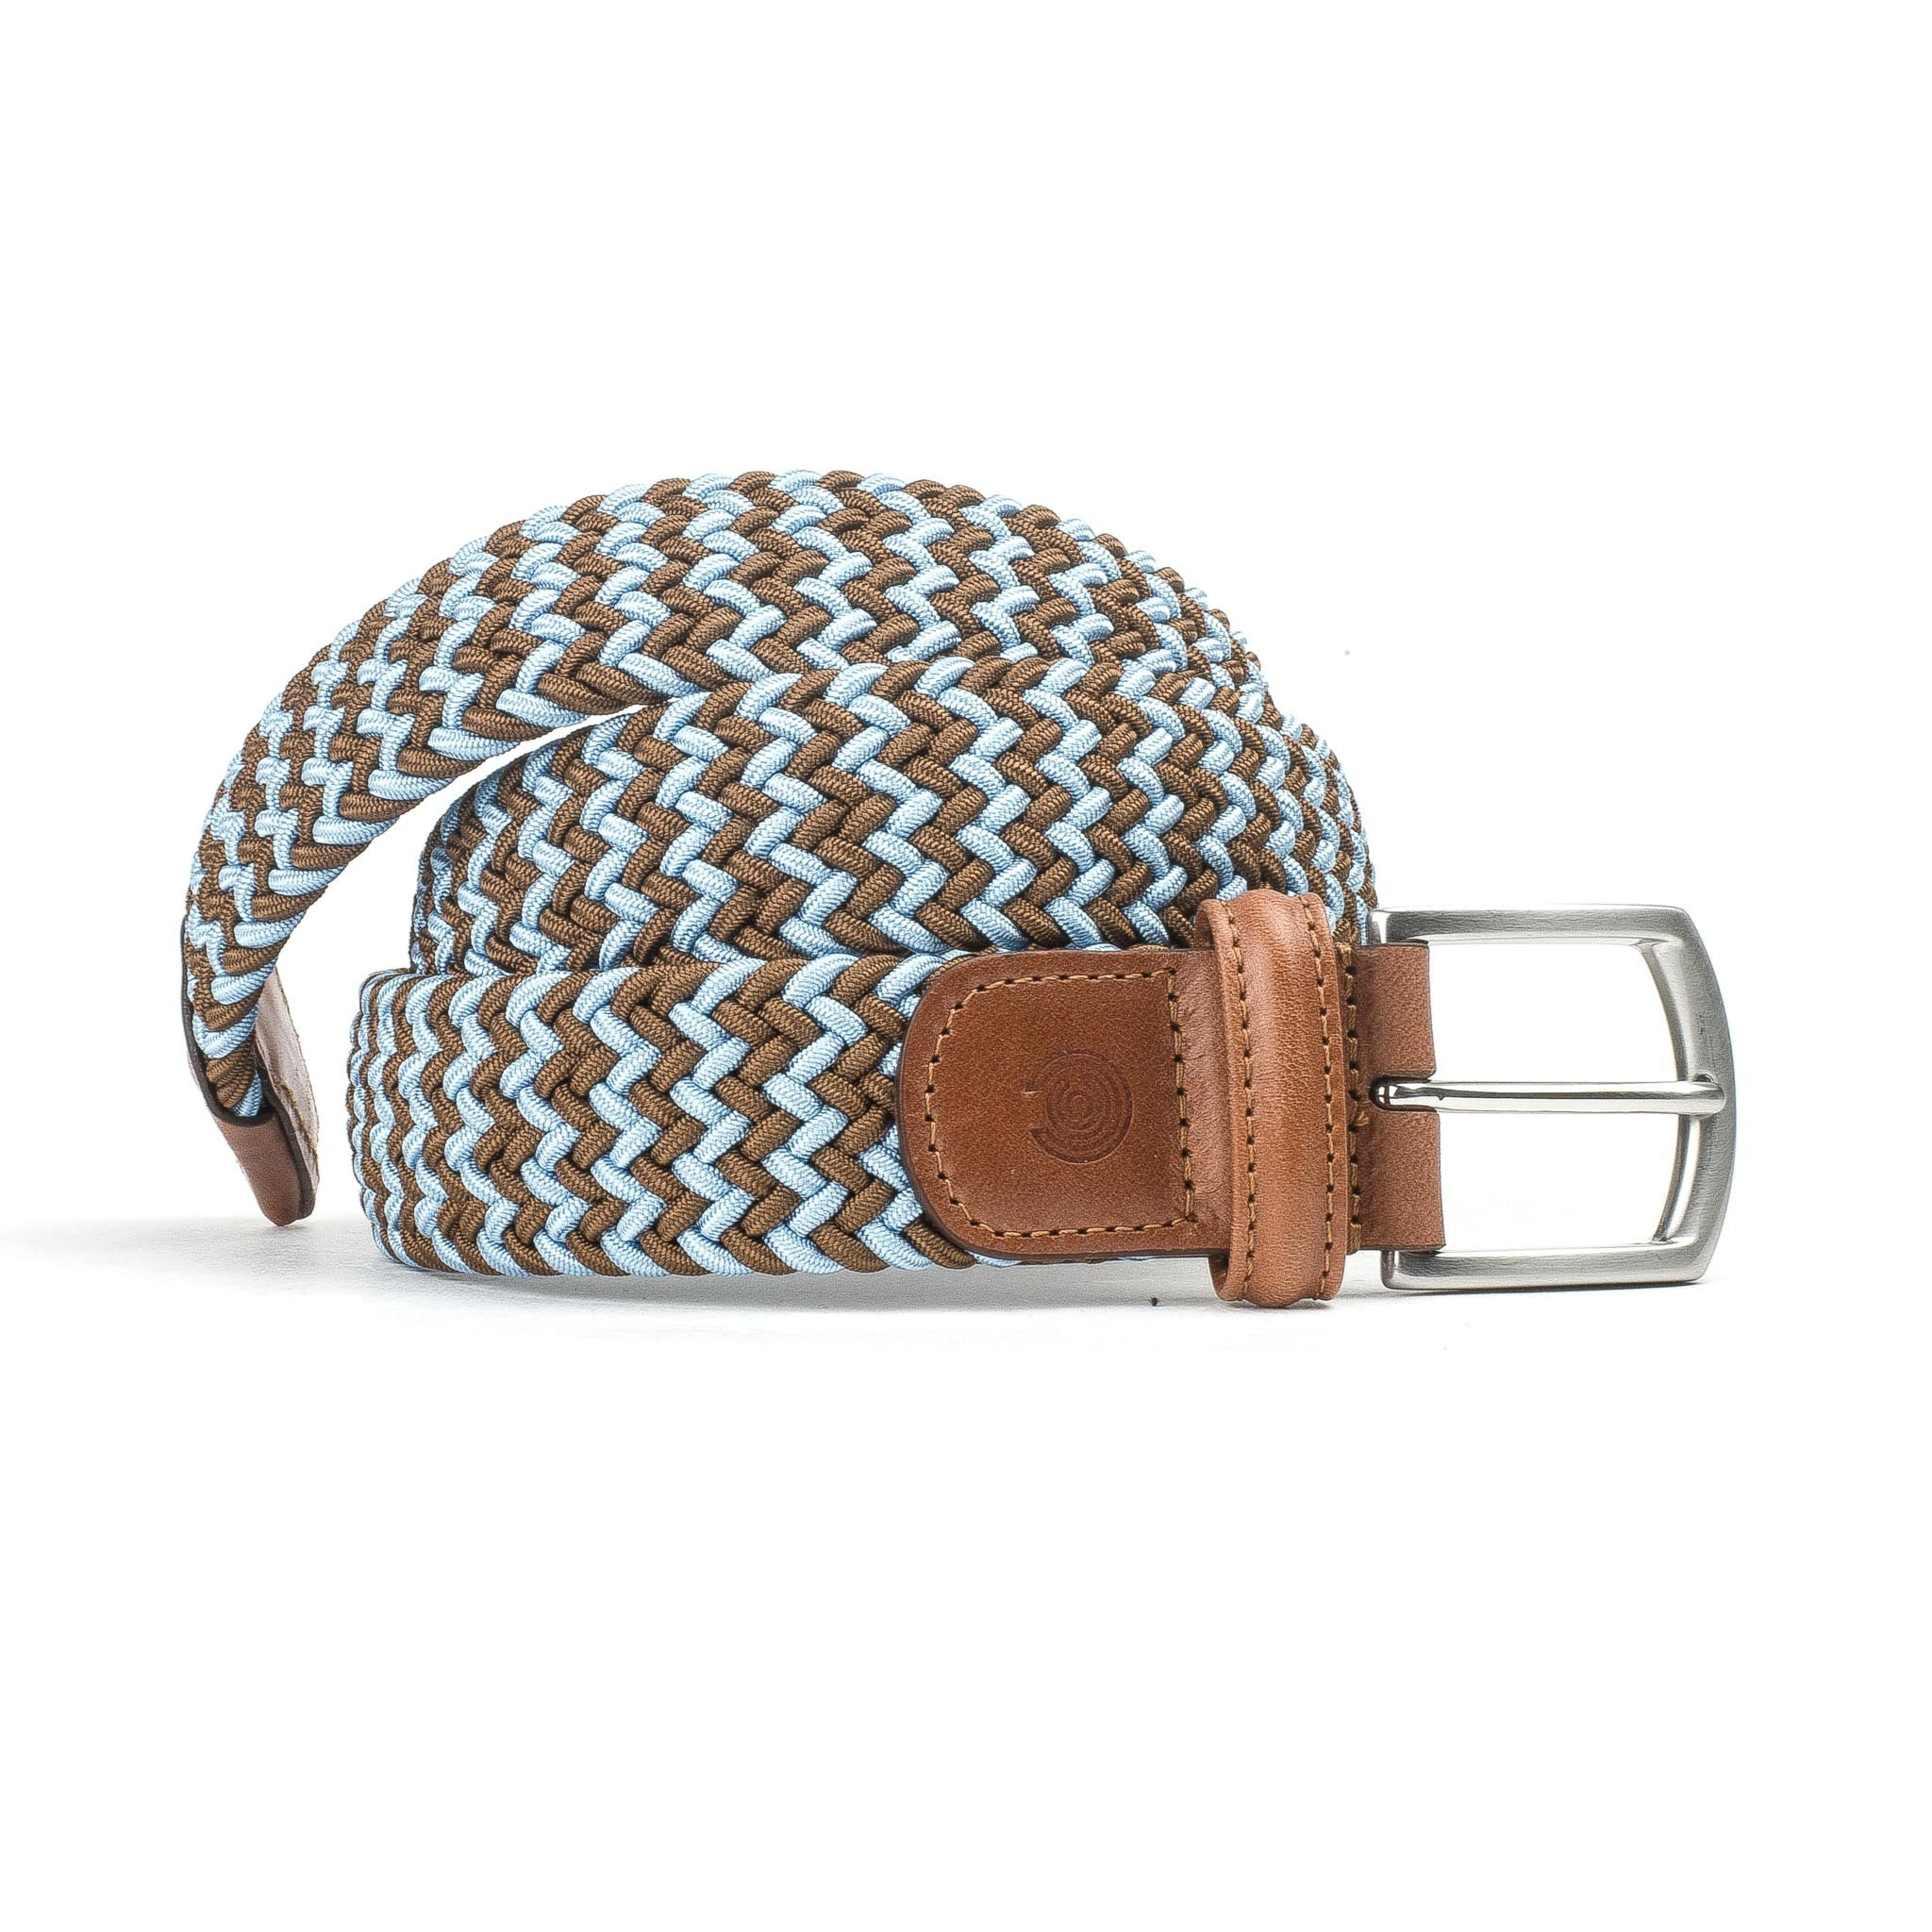 Anderson's Woven AF2620 Brown/Blue